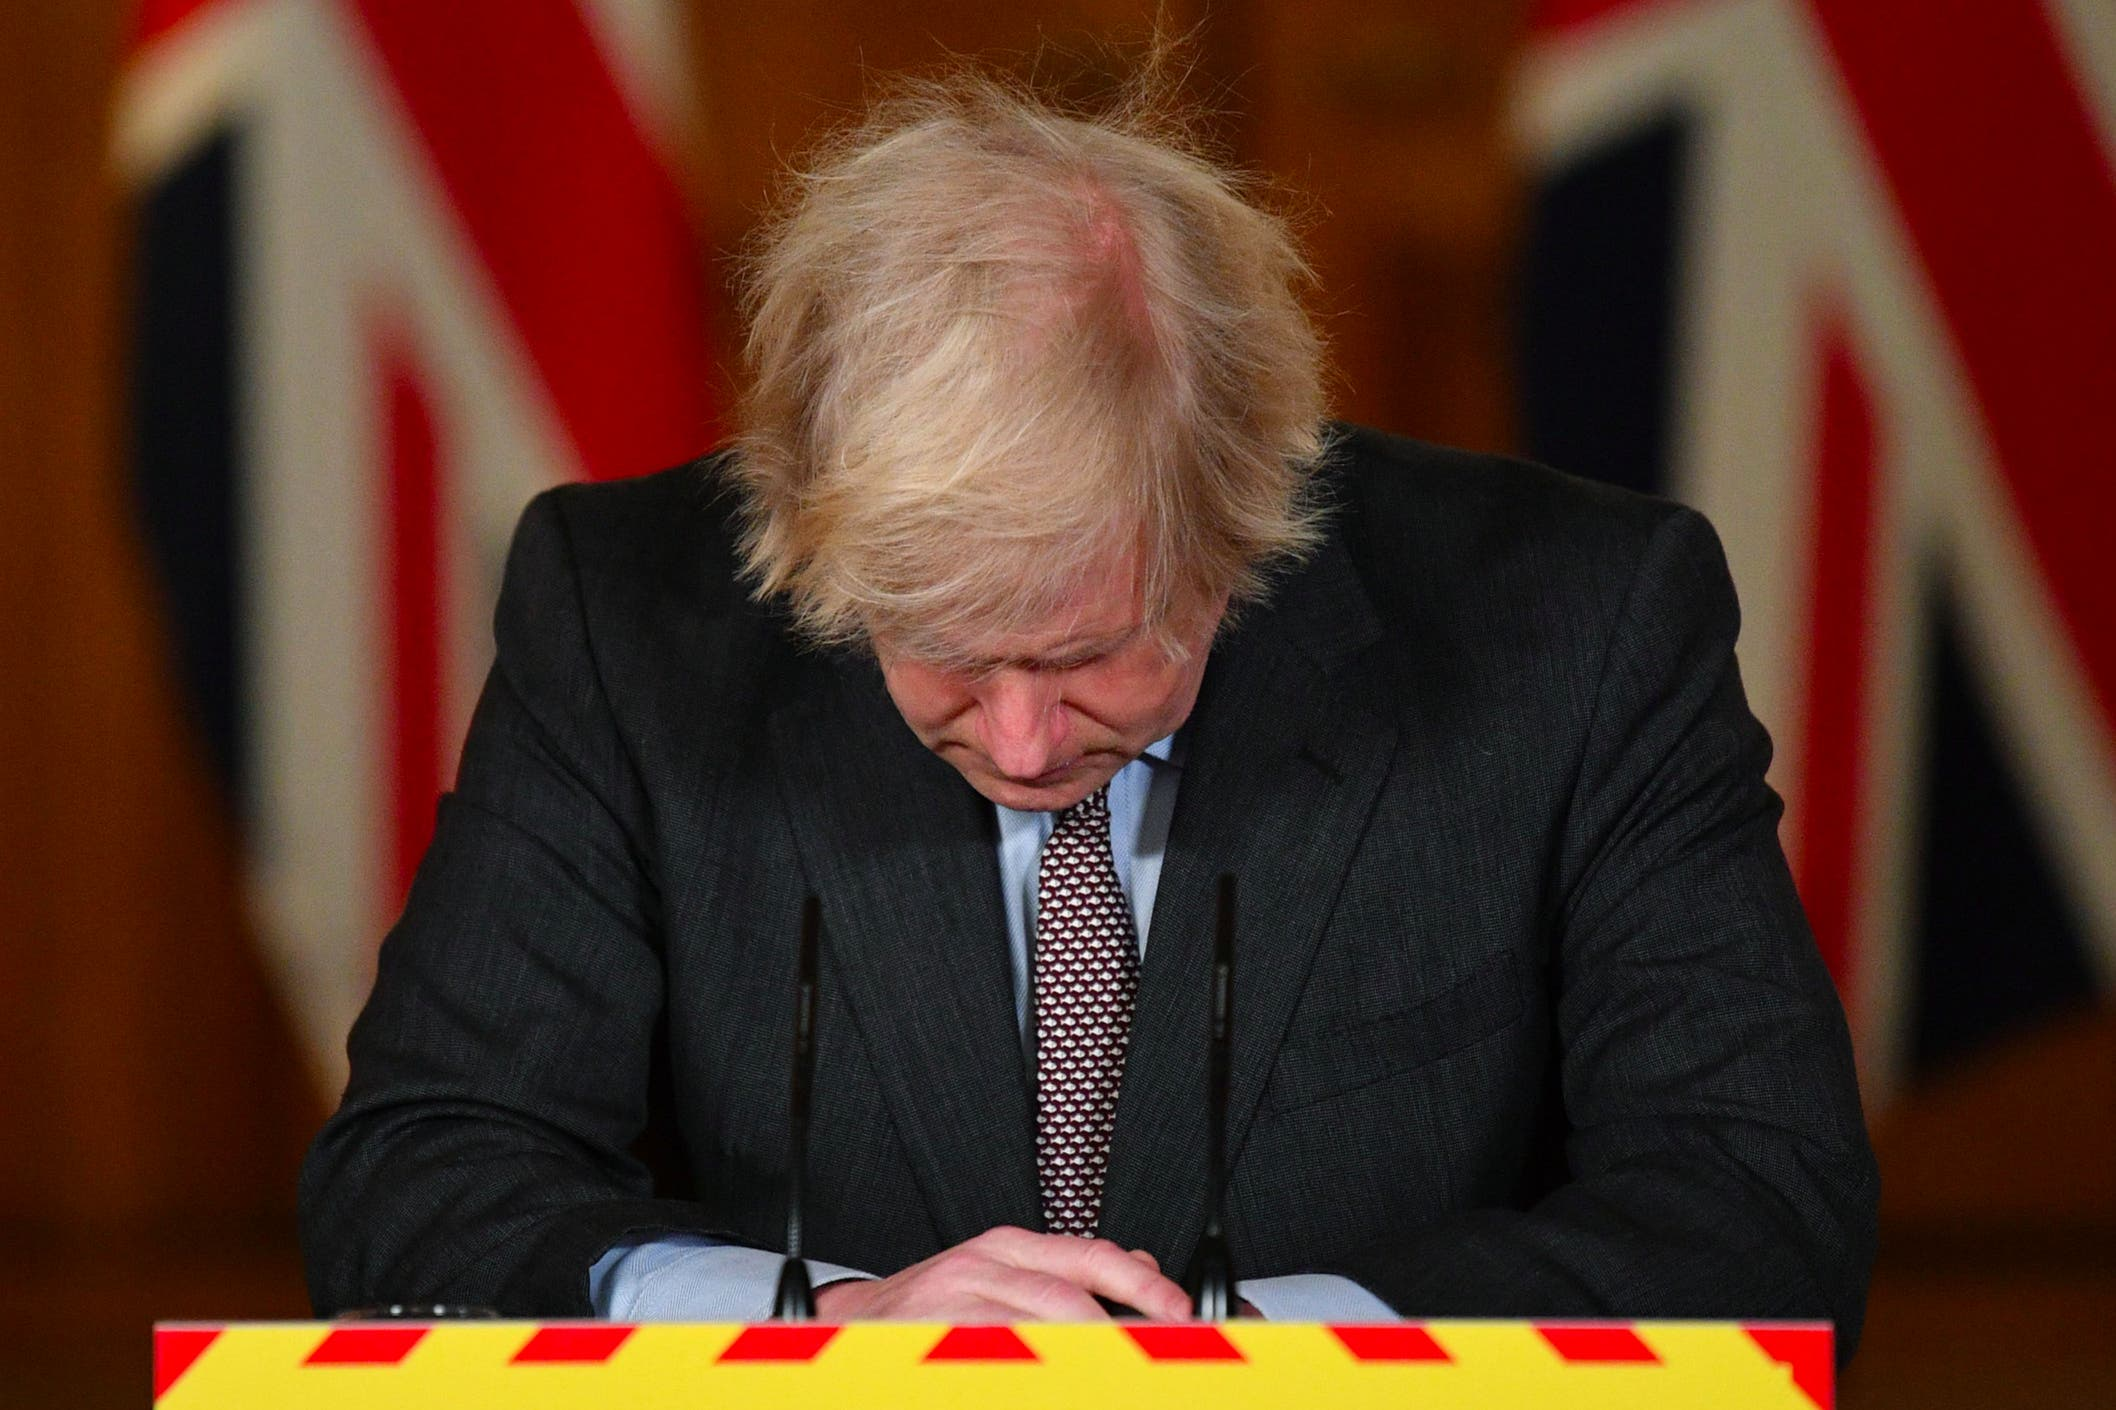 Boris Johnson looks down at the podium during a media briefing after the UK recorded 100,000 coronavirus deaths